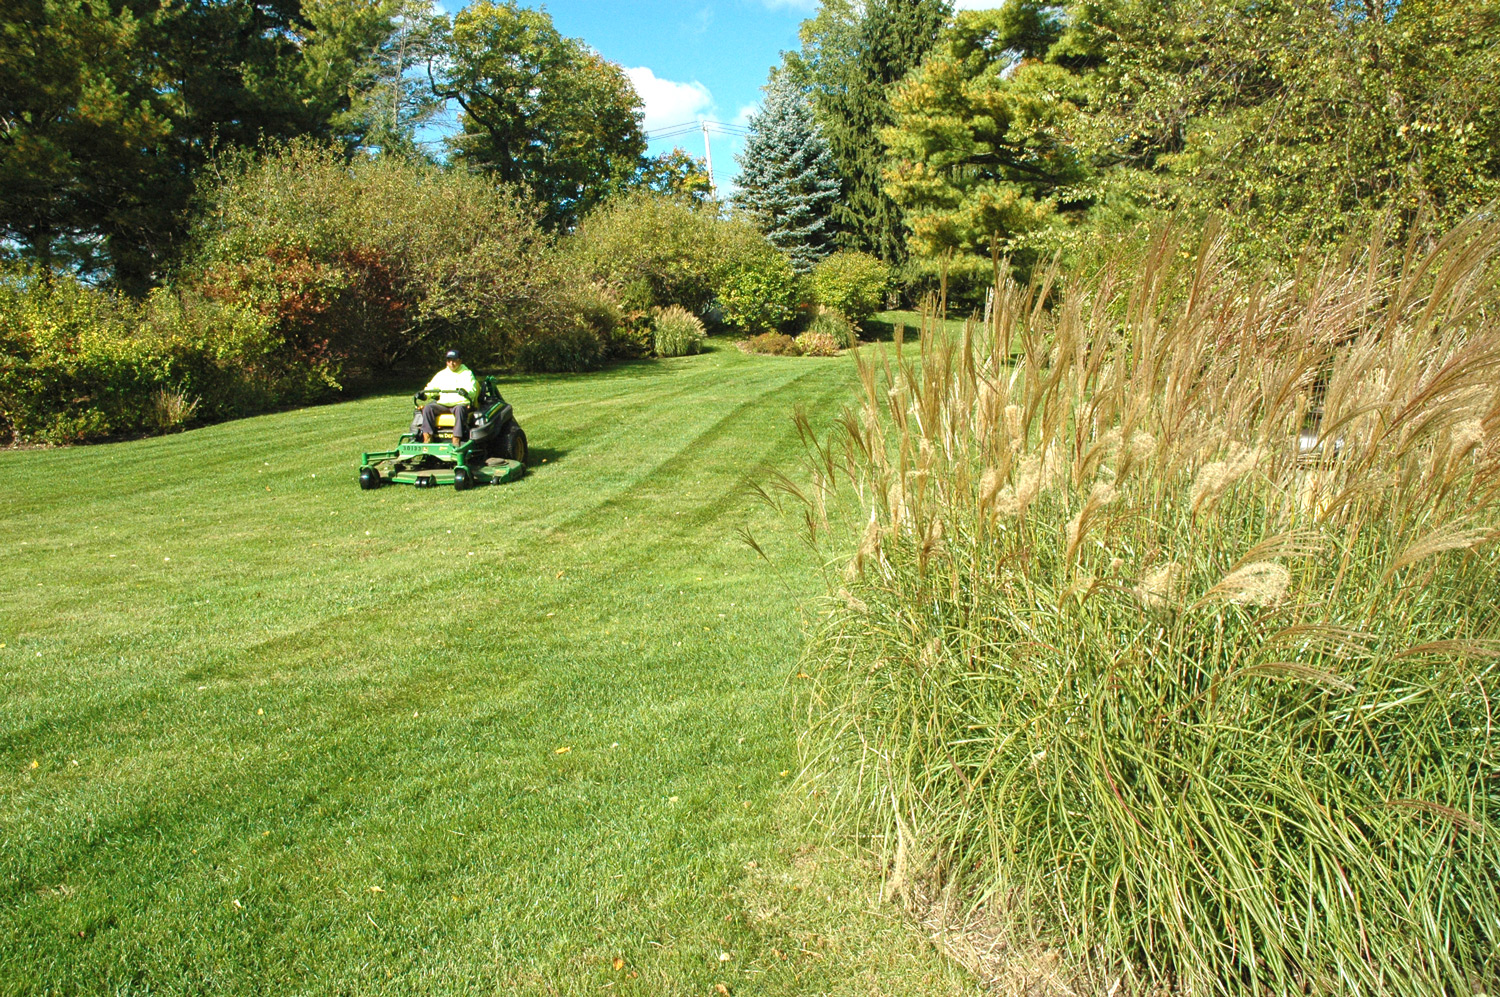 Commercial Landscape Careers in CT - Grass Turf